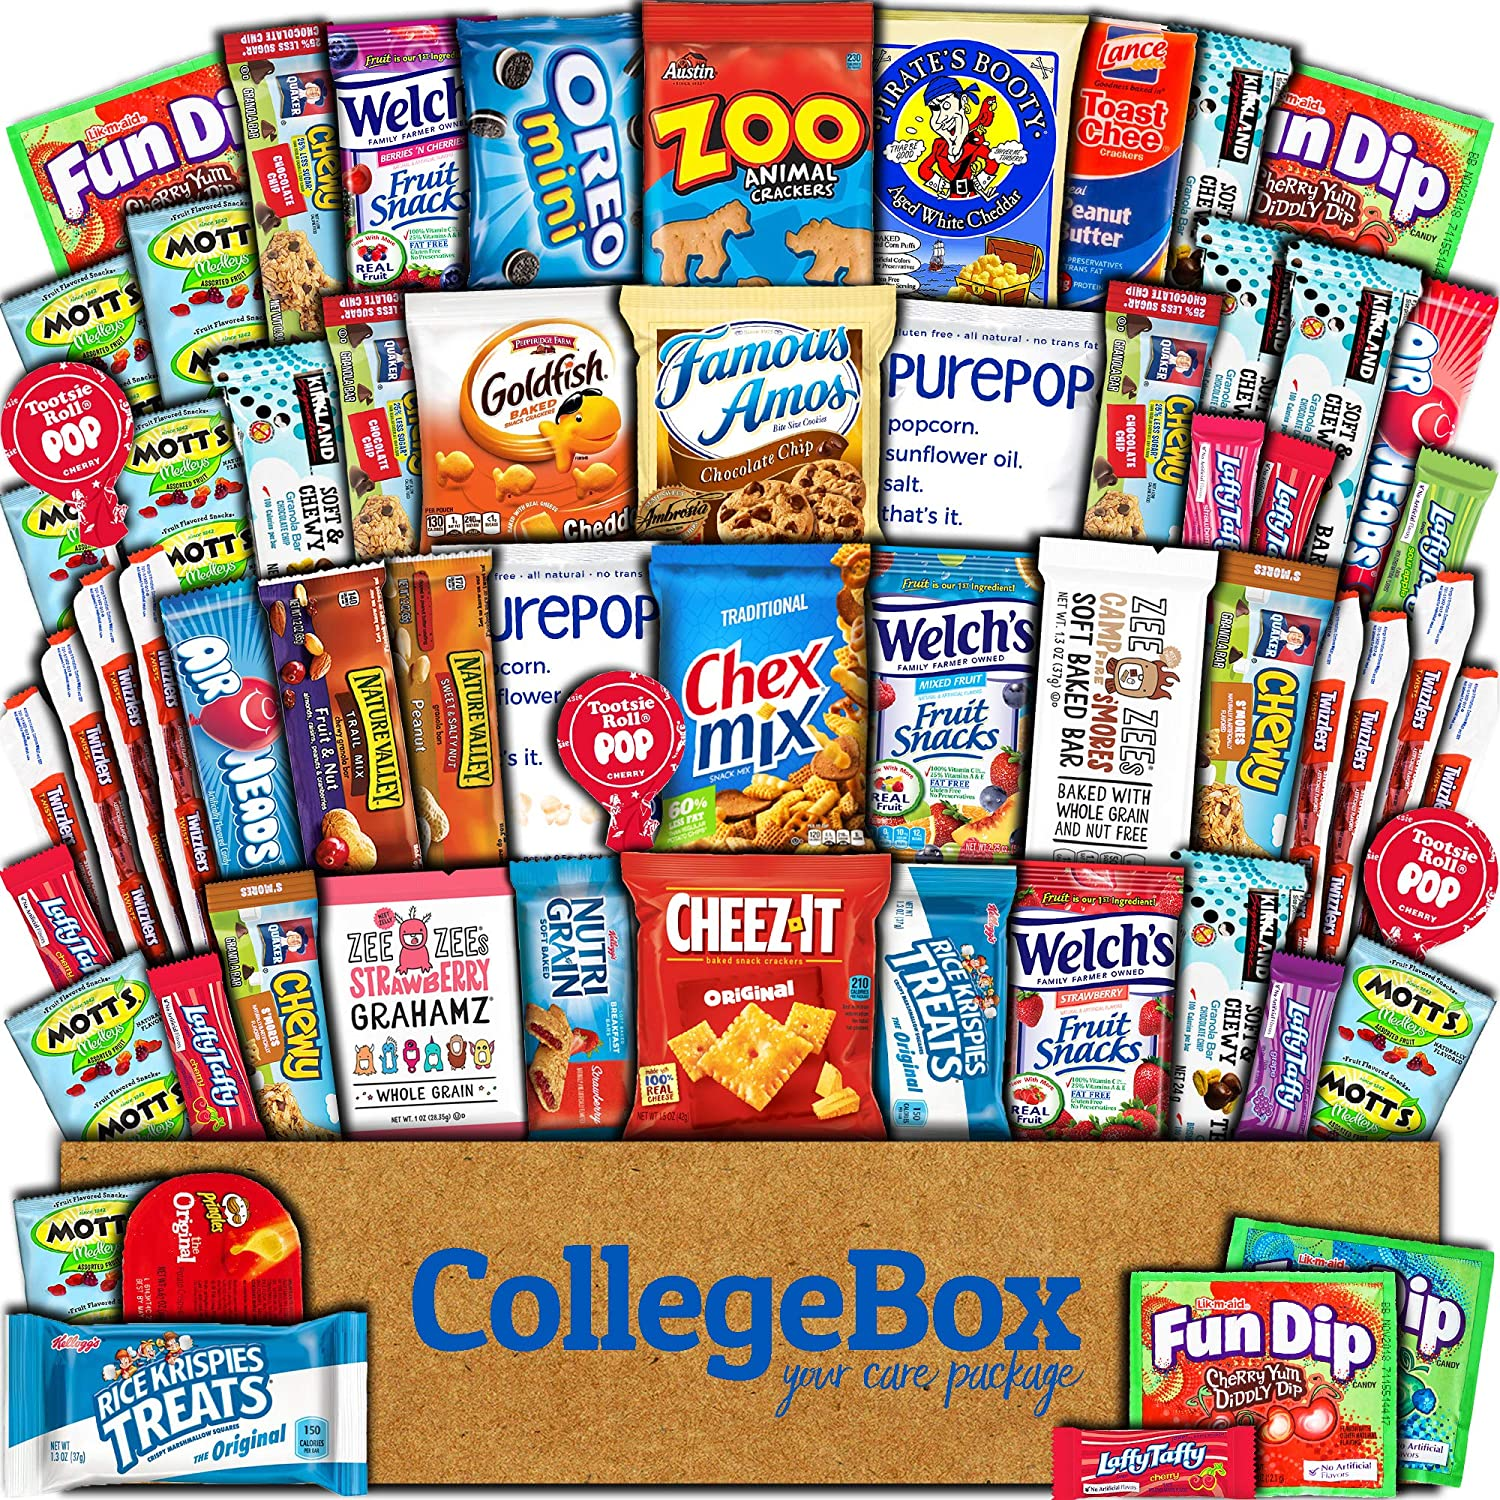 CollegeBox Care Package (60 Count) Snacks Food Cookies Chocolate Bar Chips Candy Ultimate Variety Gift Box Pack Assortment Basket Bundle Mix Bulk Sampler Treat College Students Exam Office Easter